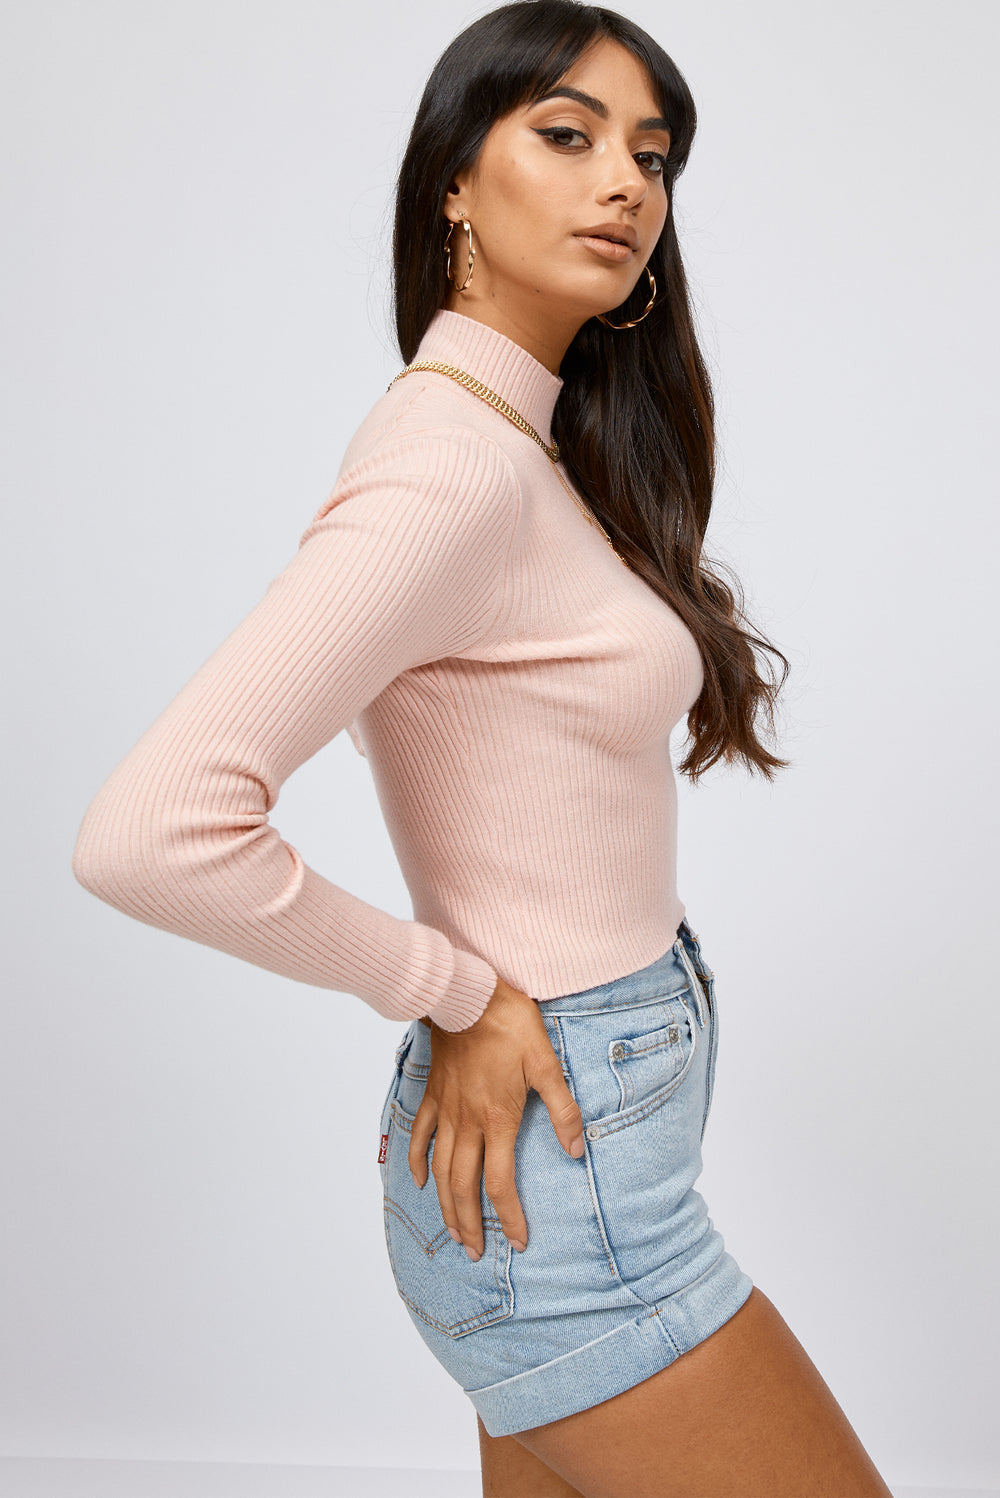 pink turtleneck sweater, turtleneck sweater, pink sweater